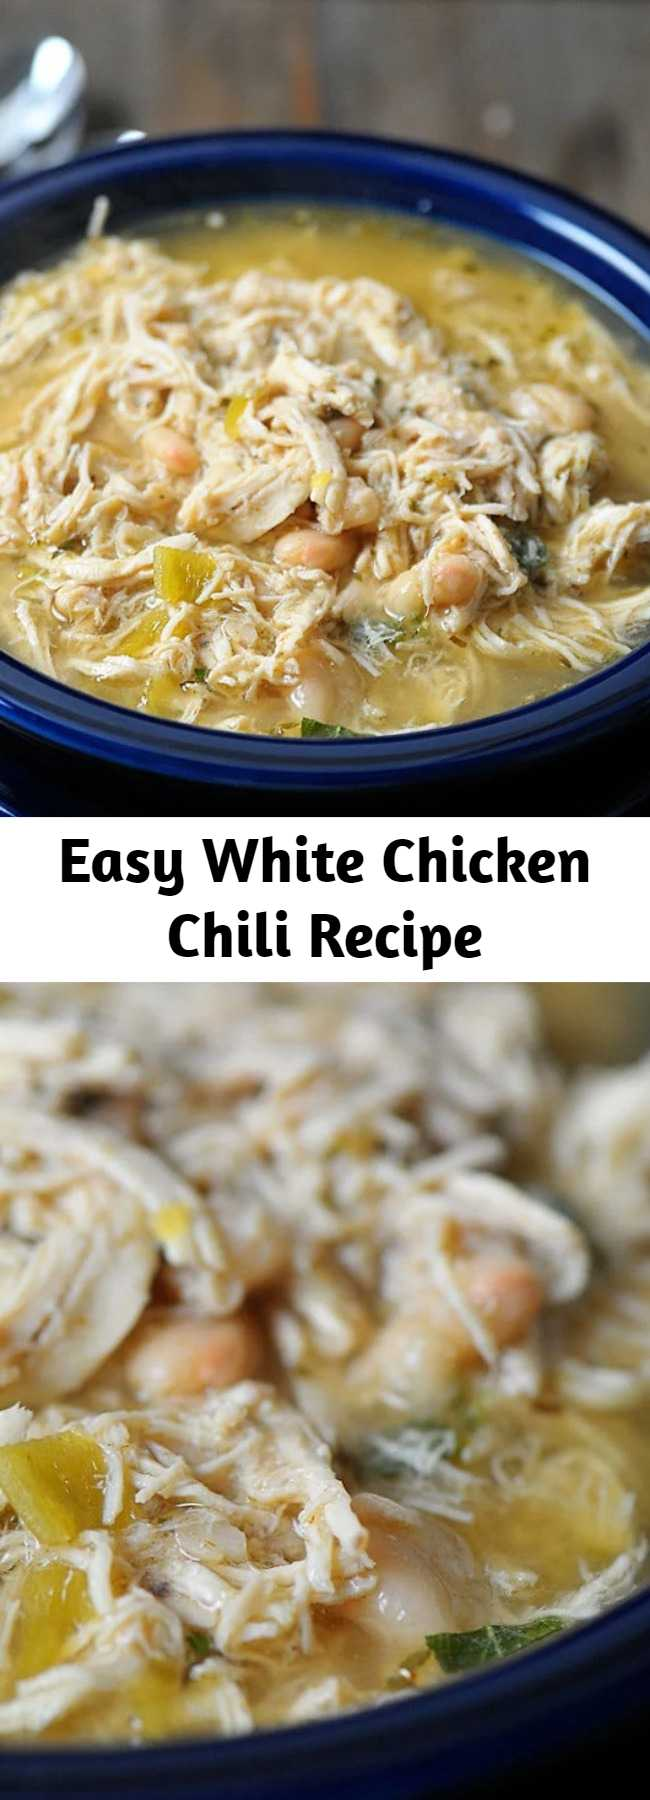 Easy White Chicken Chili Recipe - This White Chicken Chili recipe makes a delicious meal full of spicy chili flavor, chicken and white beans. You'll love the ease of this stovetop, slow cooker and Instant Pot White Chicken Chili!